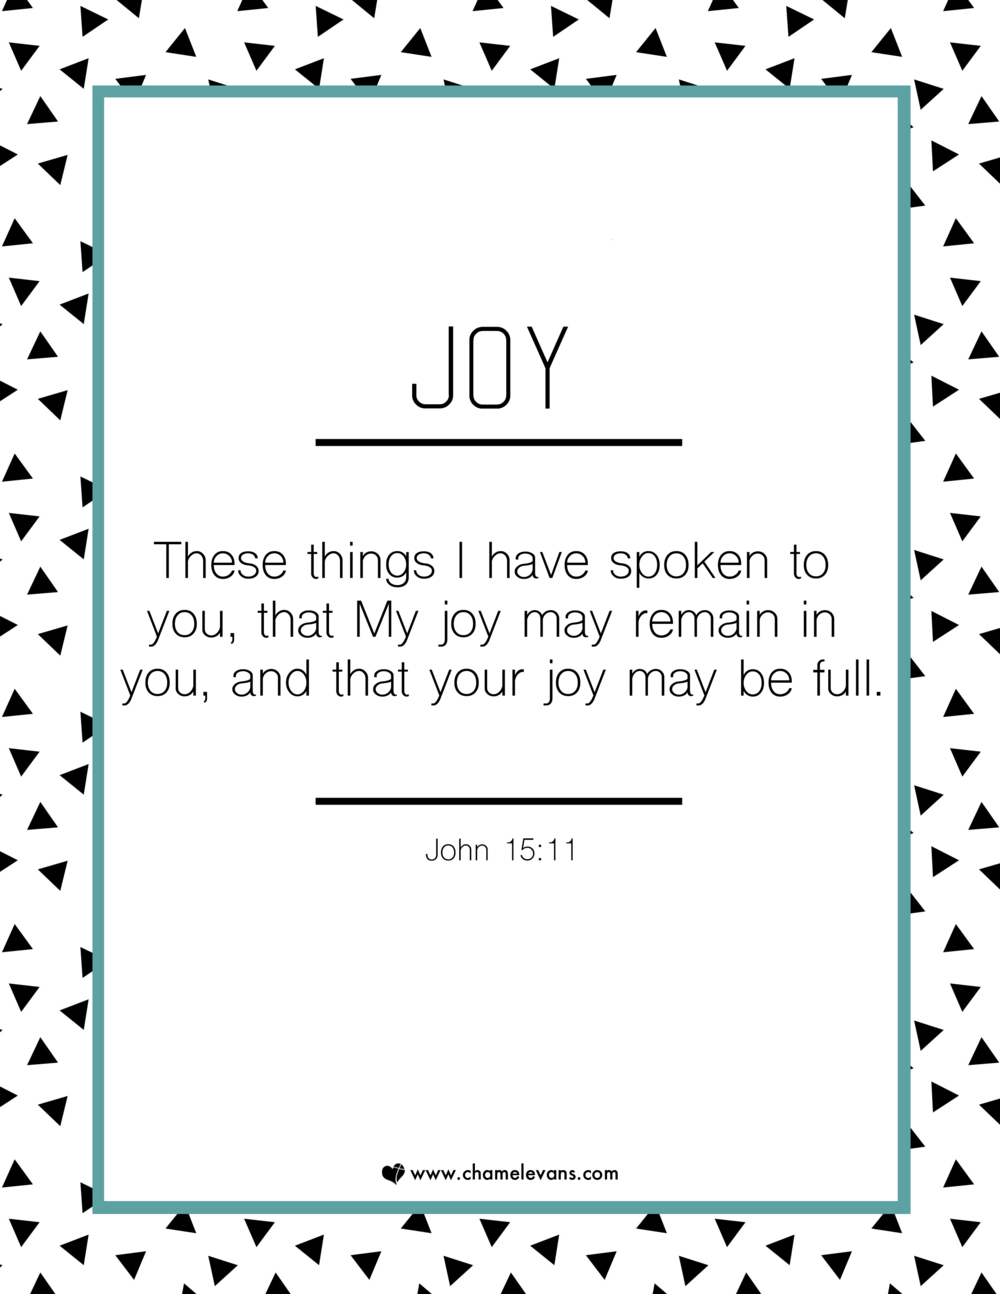 FREE SCRIPTURE ART PRINTABLES - joy - STAND IN GOD'S TRUTH | WWW.CHAMELEVANS.COM